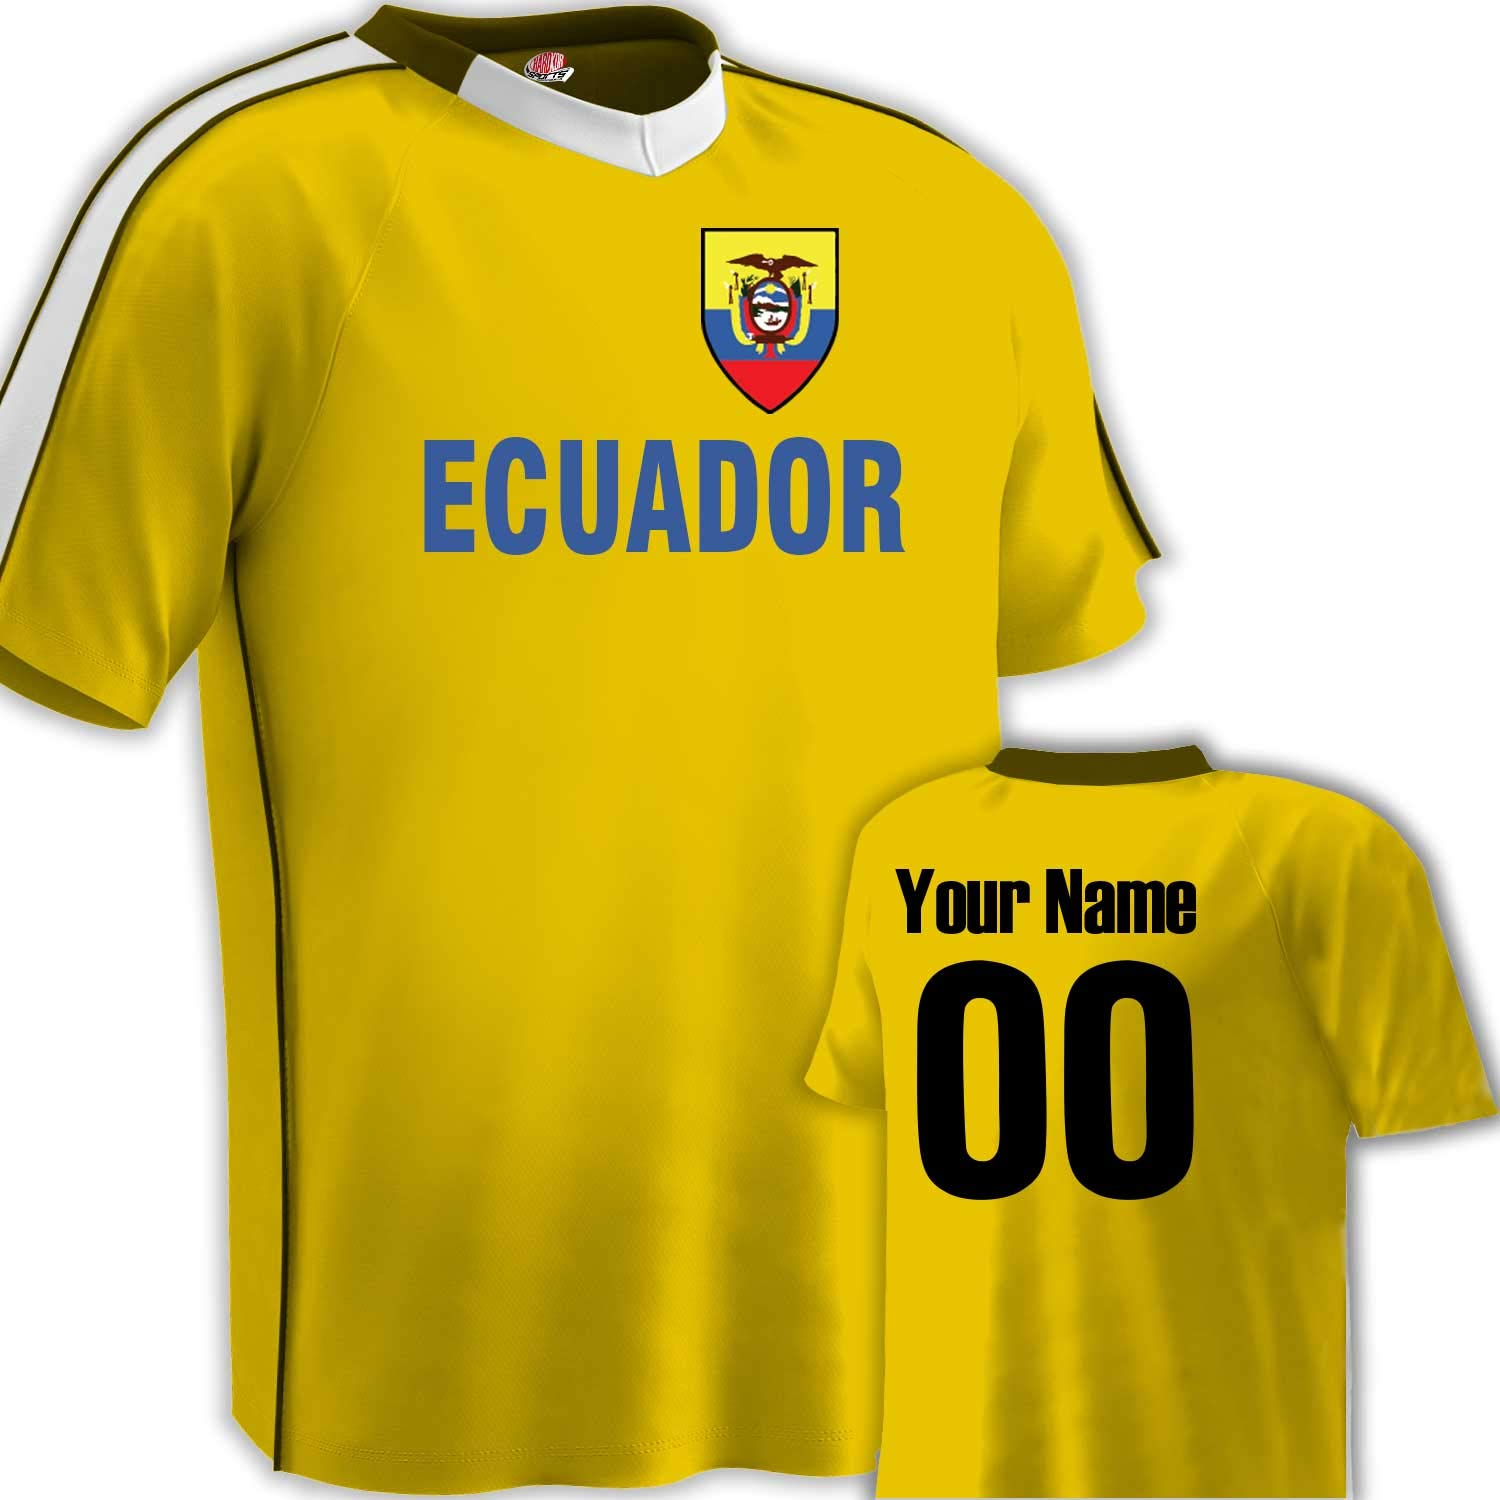 big sale bb7d7 37634 Amazon.com: Customized Ecuador Soccer Jersey Youth Small in ...